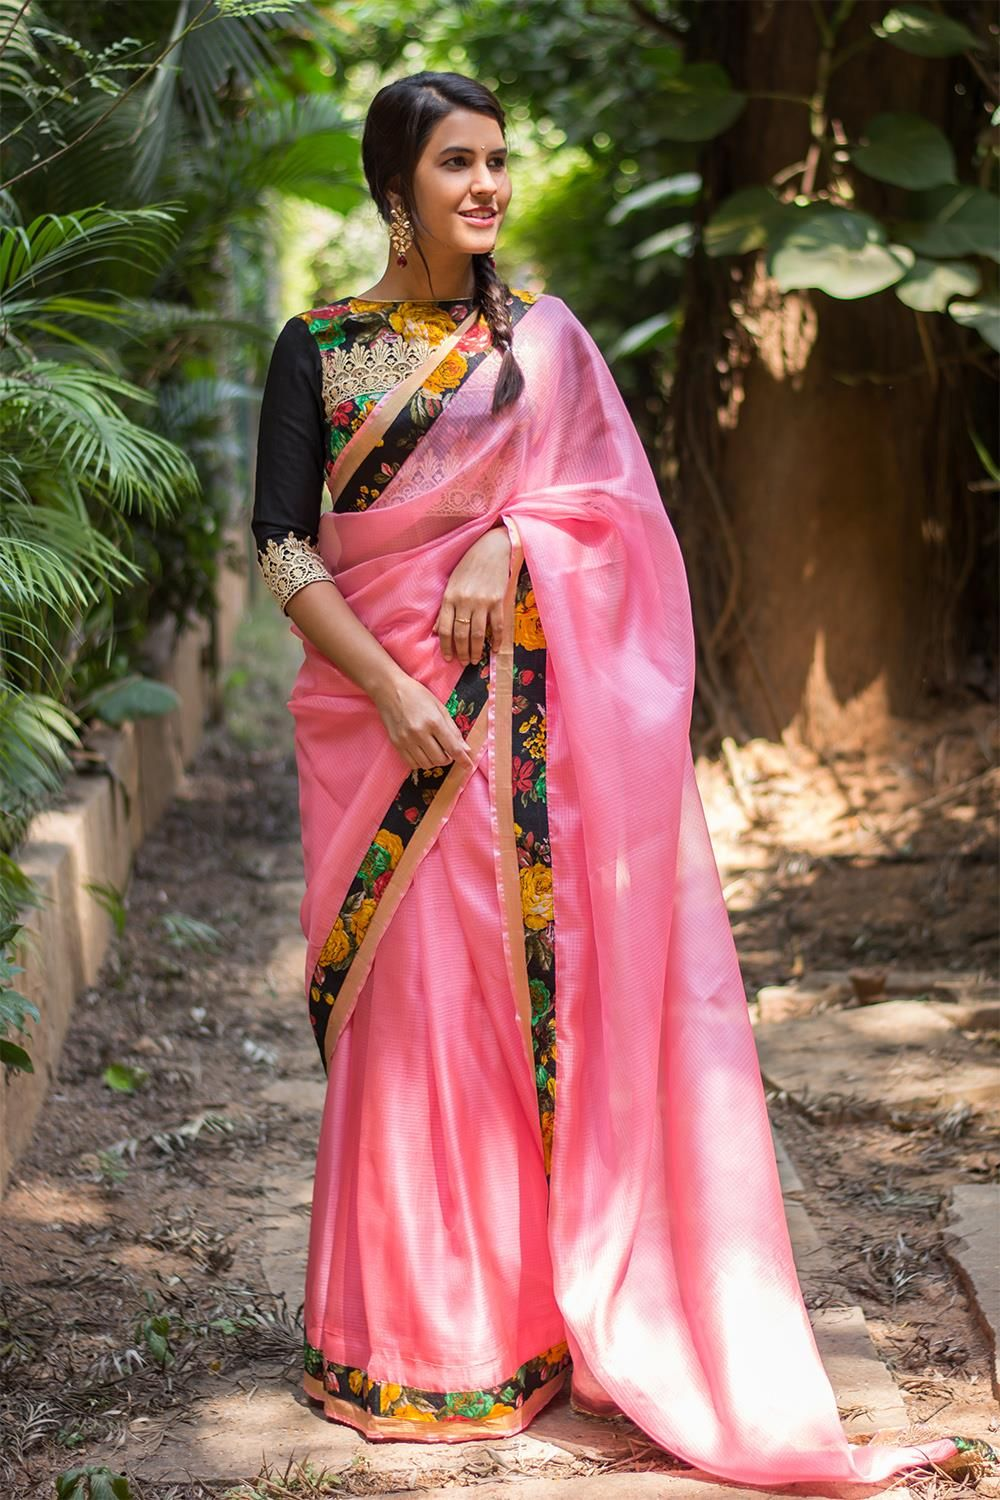 c375e5c4be4dd8 https   www.houseofblouse.com ready-to-shop-item pink-saree-863  saree   blouse  houseofblouse  indian  bollywood  summer  style  kota  babypink   pink  black ...